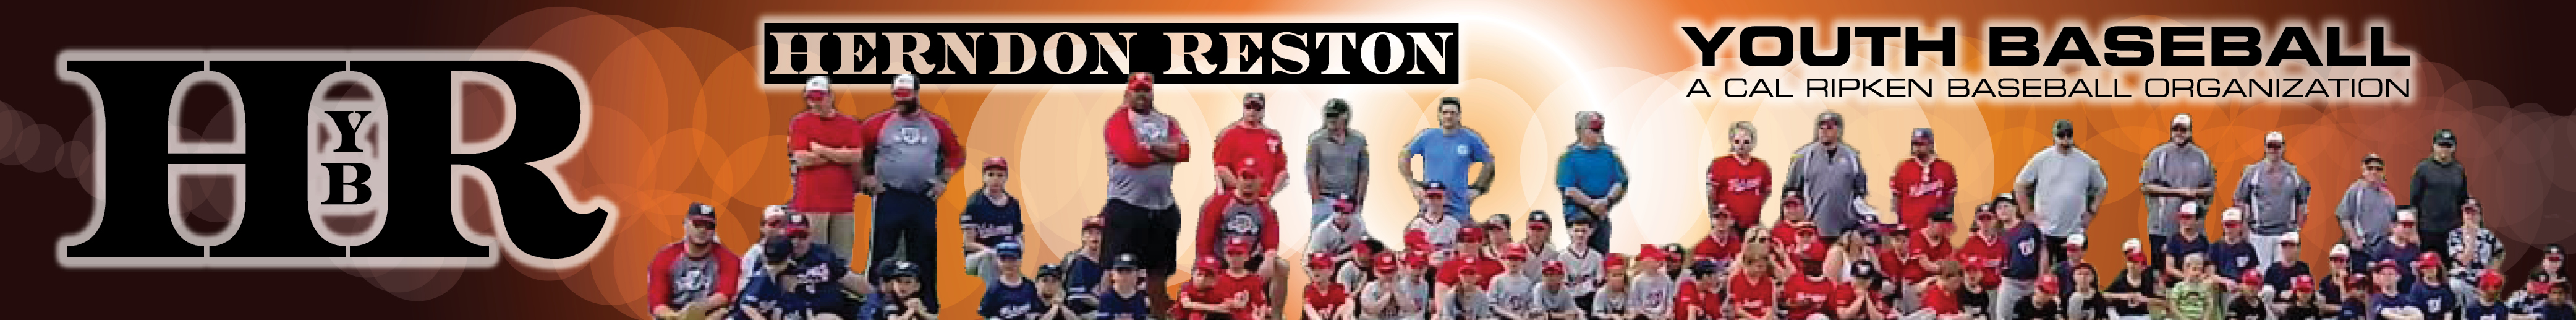 Herndon Optimist Youth Baseball, Cal Ripken Baseball, Run, Field